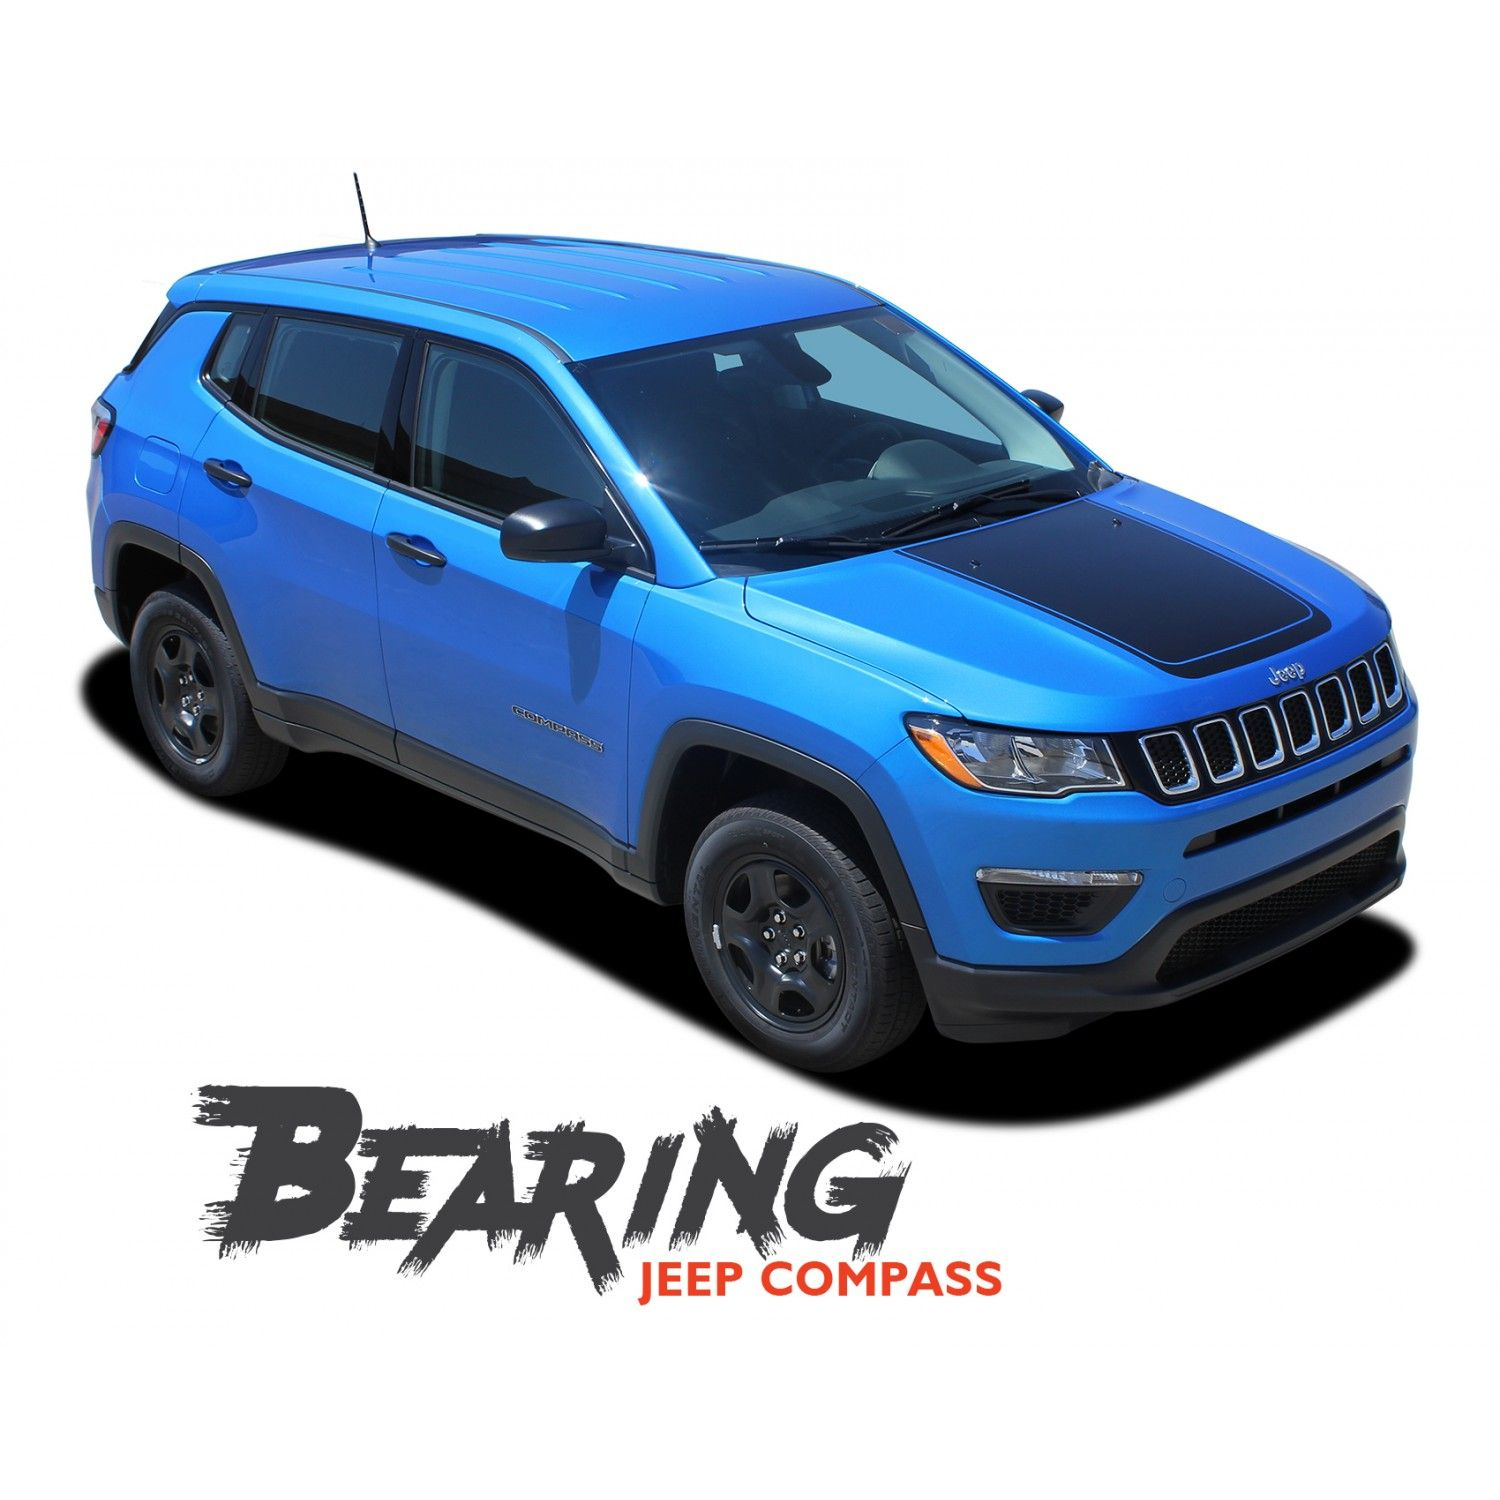 Jeep Compass Bearing Solid Hood Vinyl Graphics Decal Stripe Kit